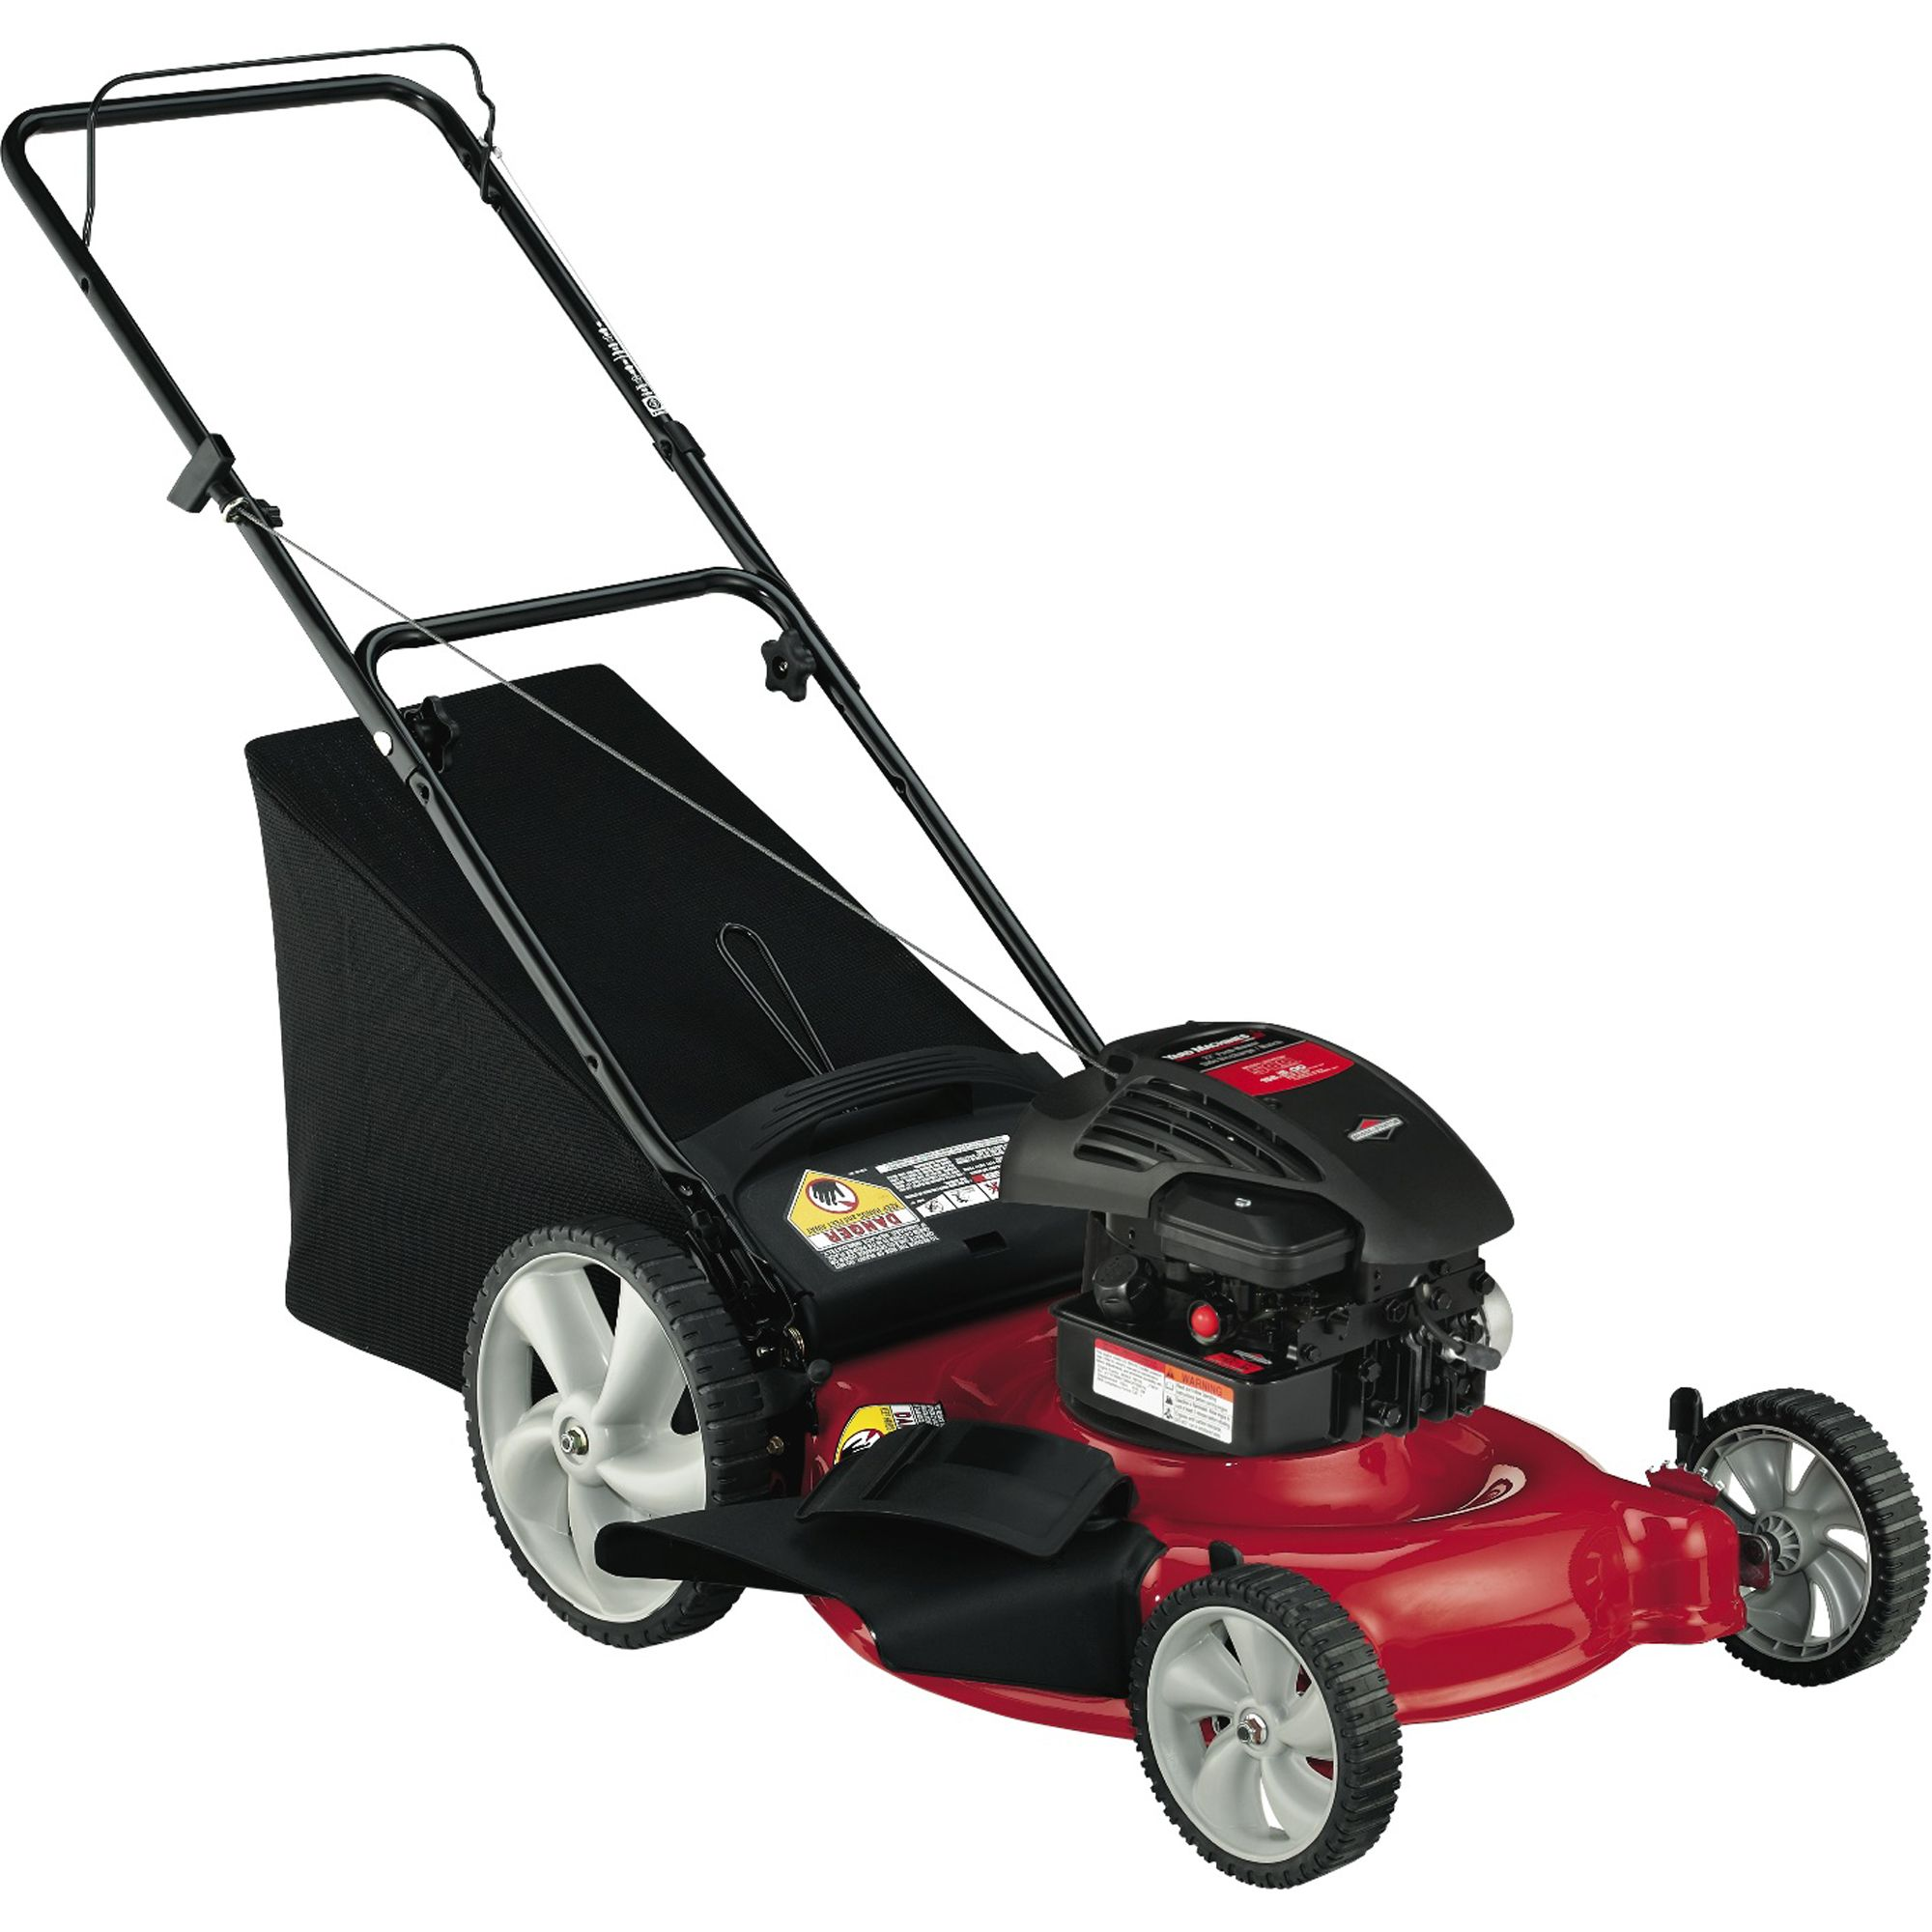 Yard Machine Lawn Mower Yard Machines 158cc 21 Quot Briggs And Stratton 3 In 1 High